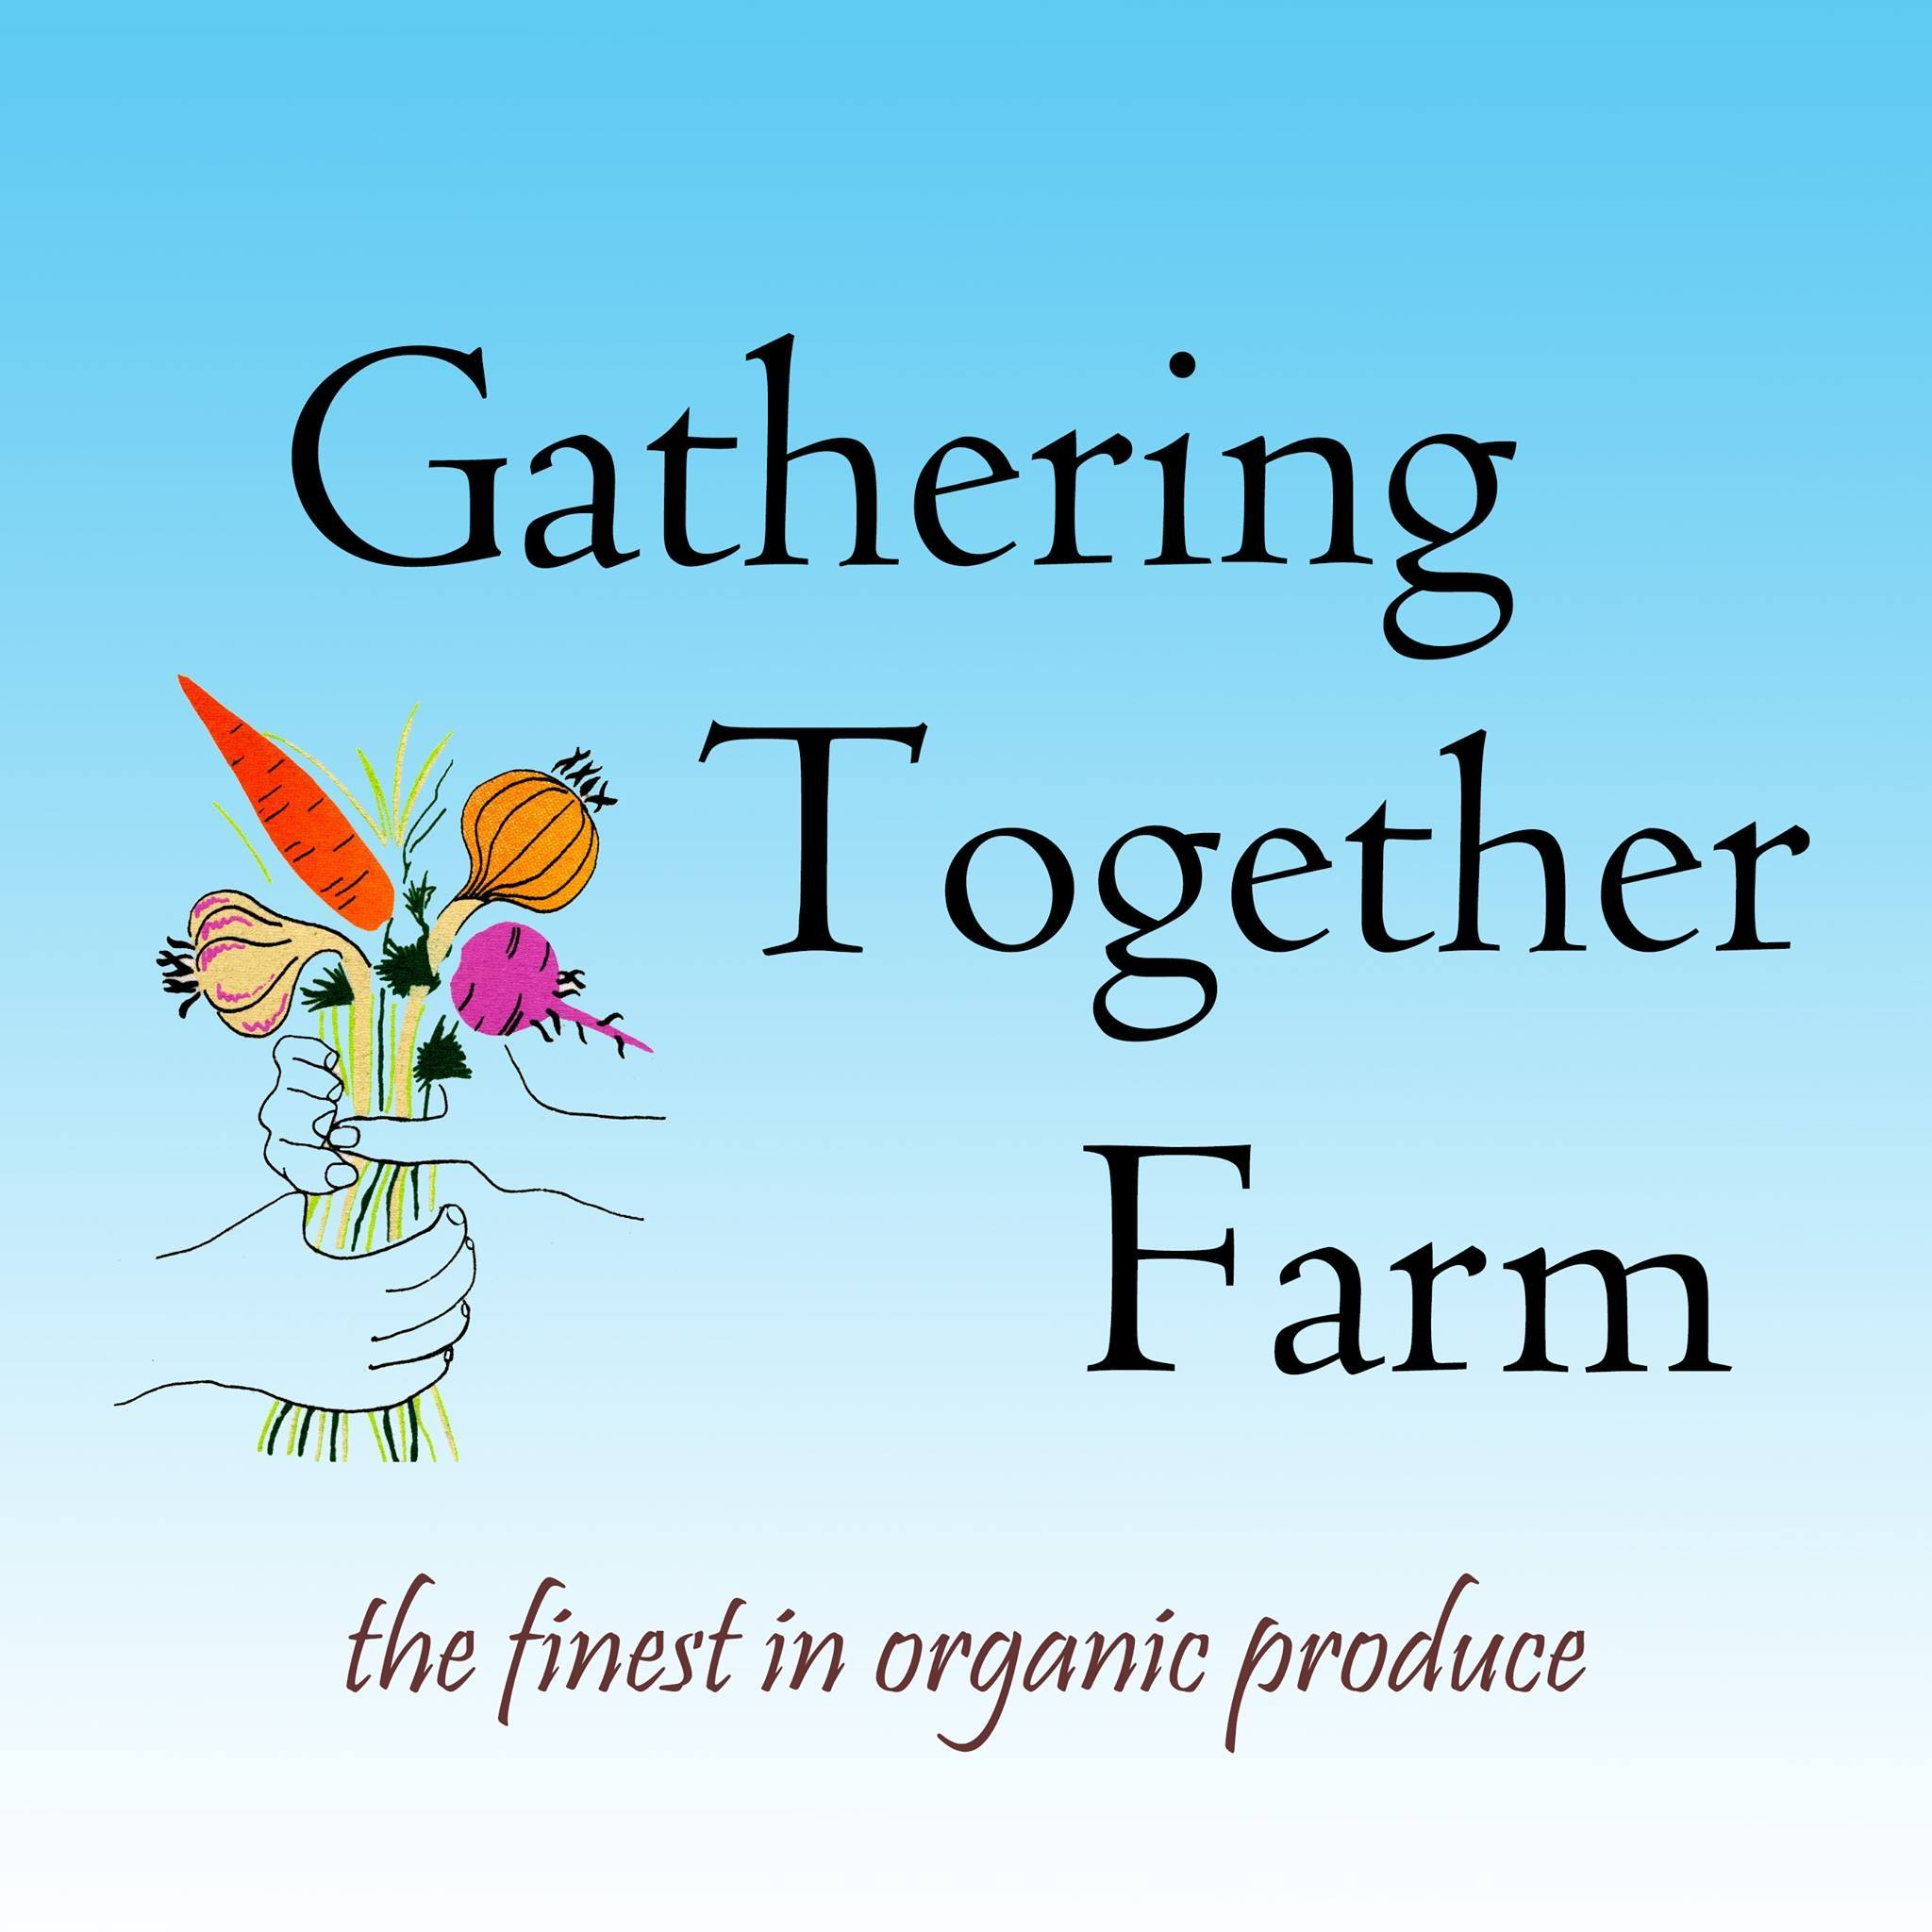 Gathering Together Farm